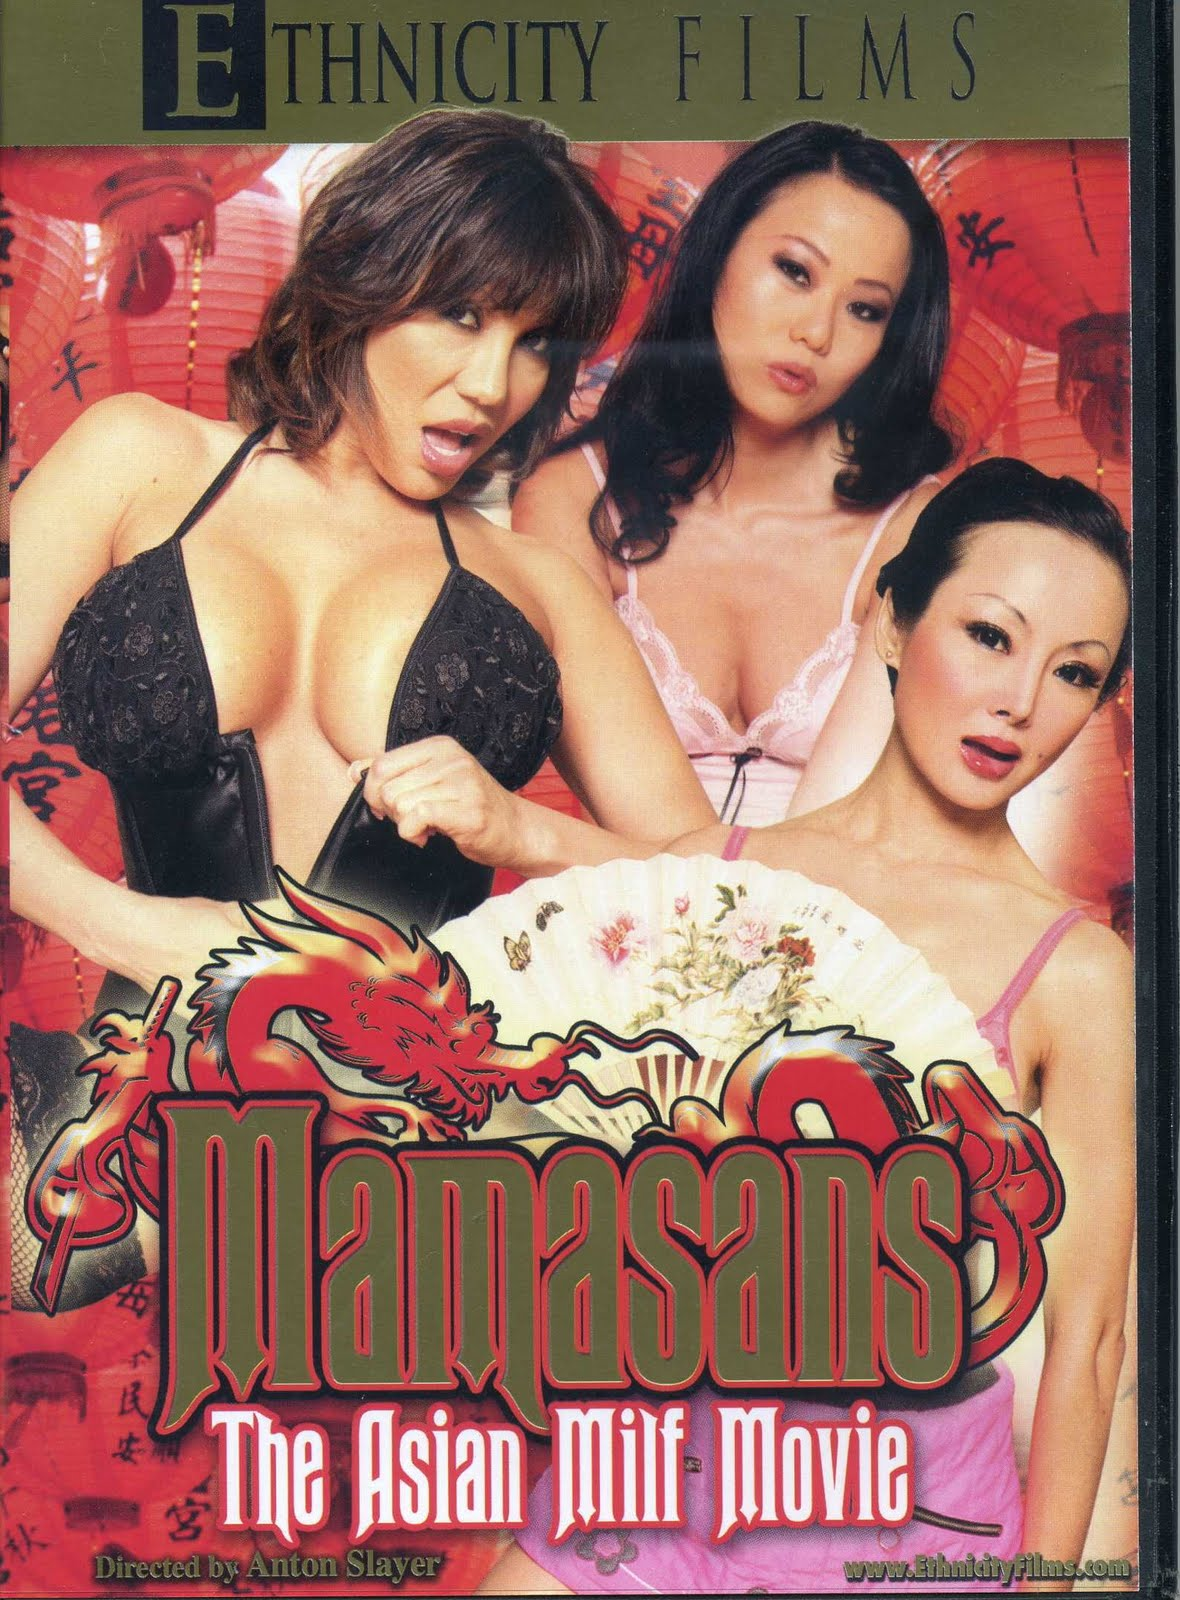 Magnificent milf movies oriental apologise, but, opinion